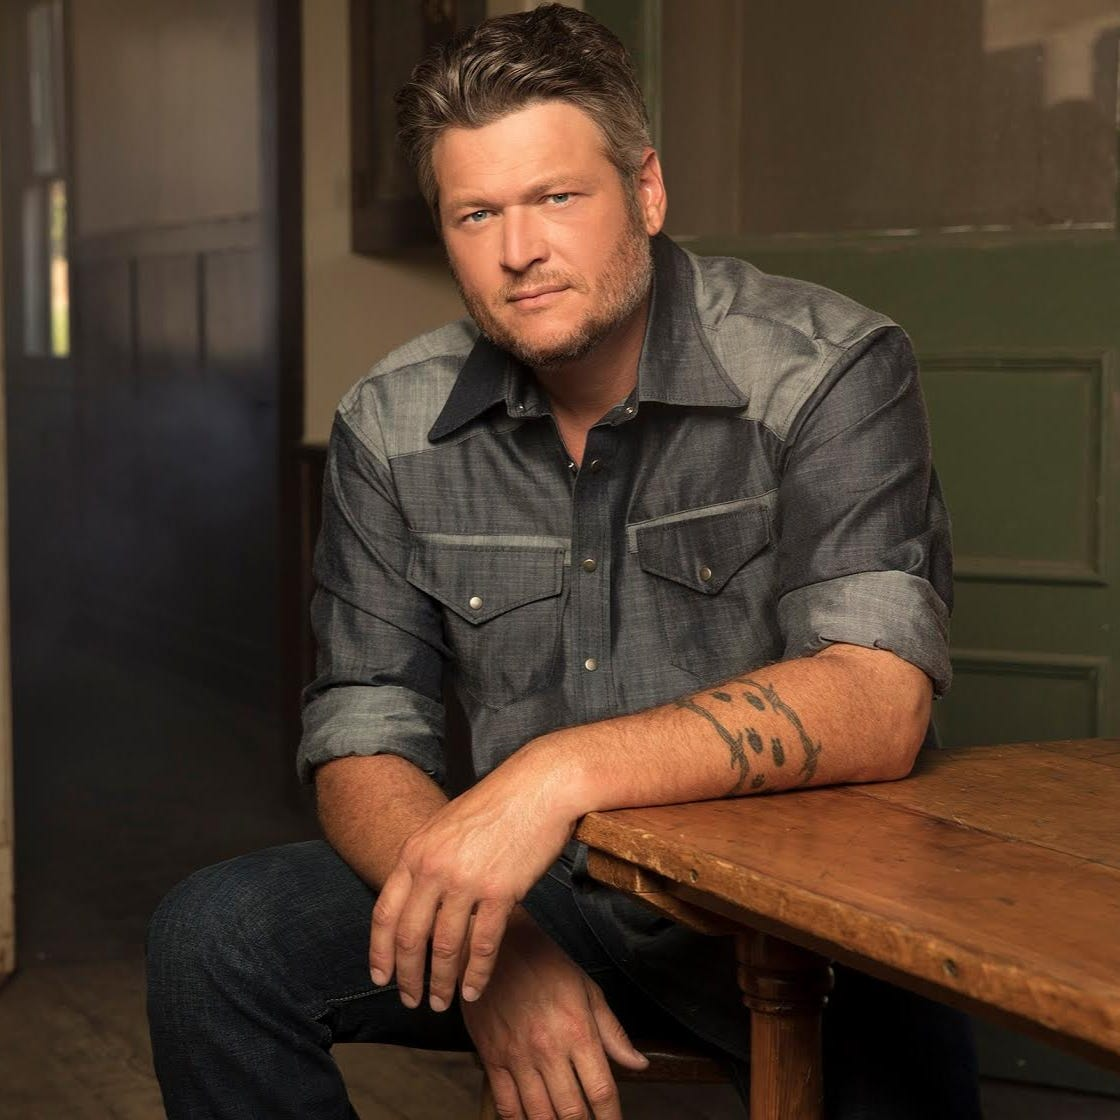 Blake Shelton straddles present and past for 'Friends and Heroes' tour